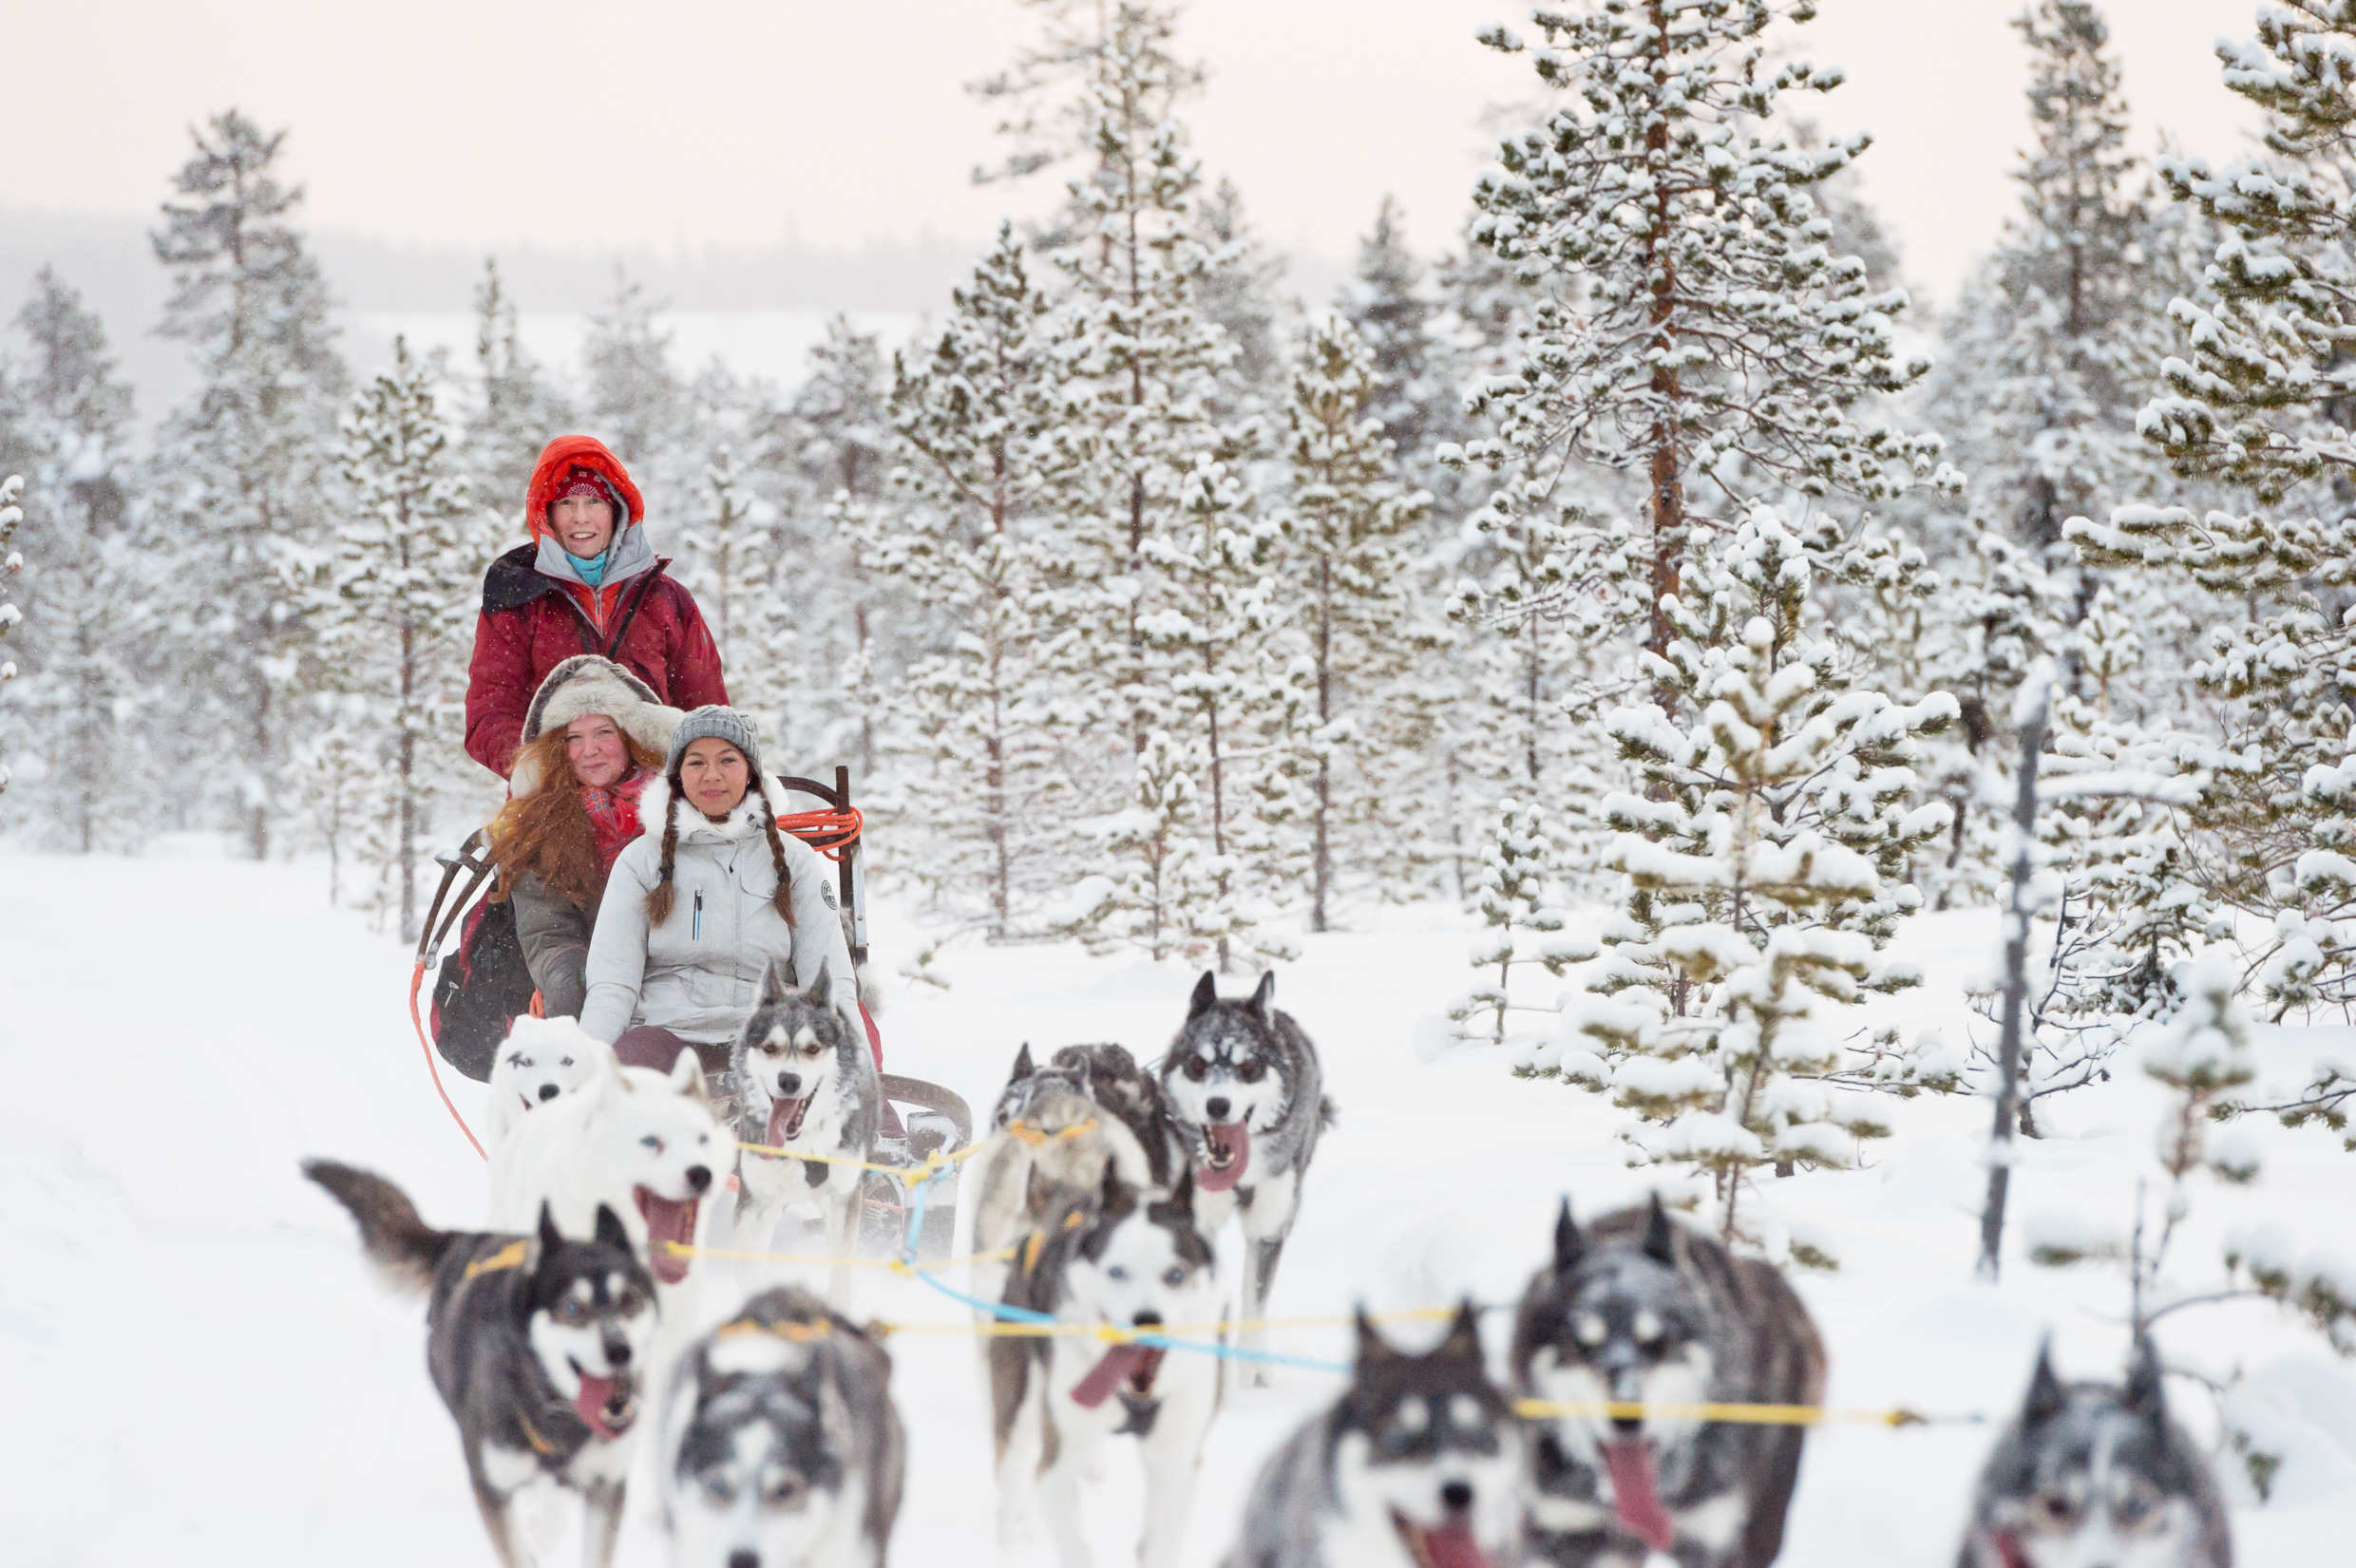 Copy of Dog sledding in Jokkmokk. Photo: Anna Öhlund/imagebank.sweden.se